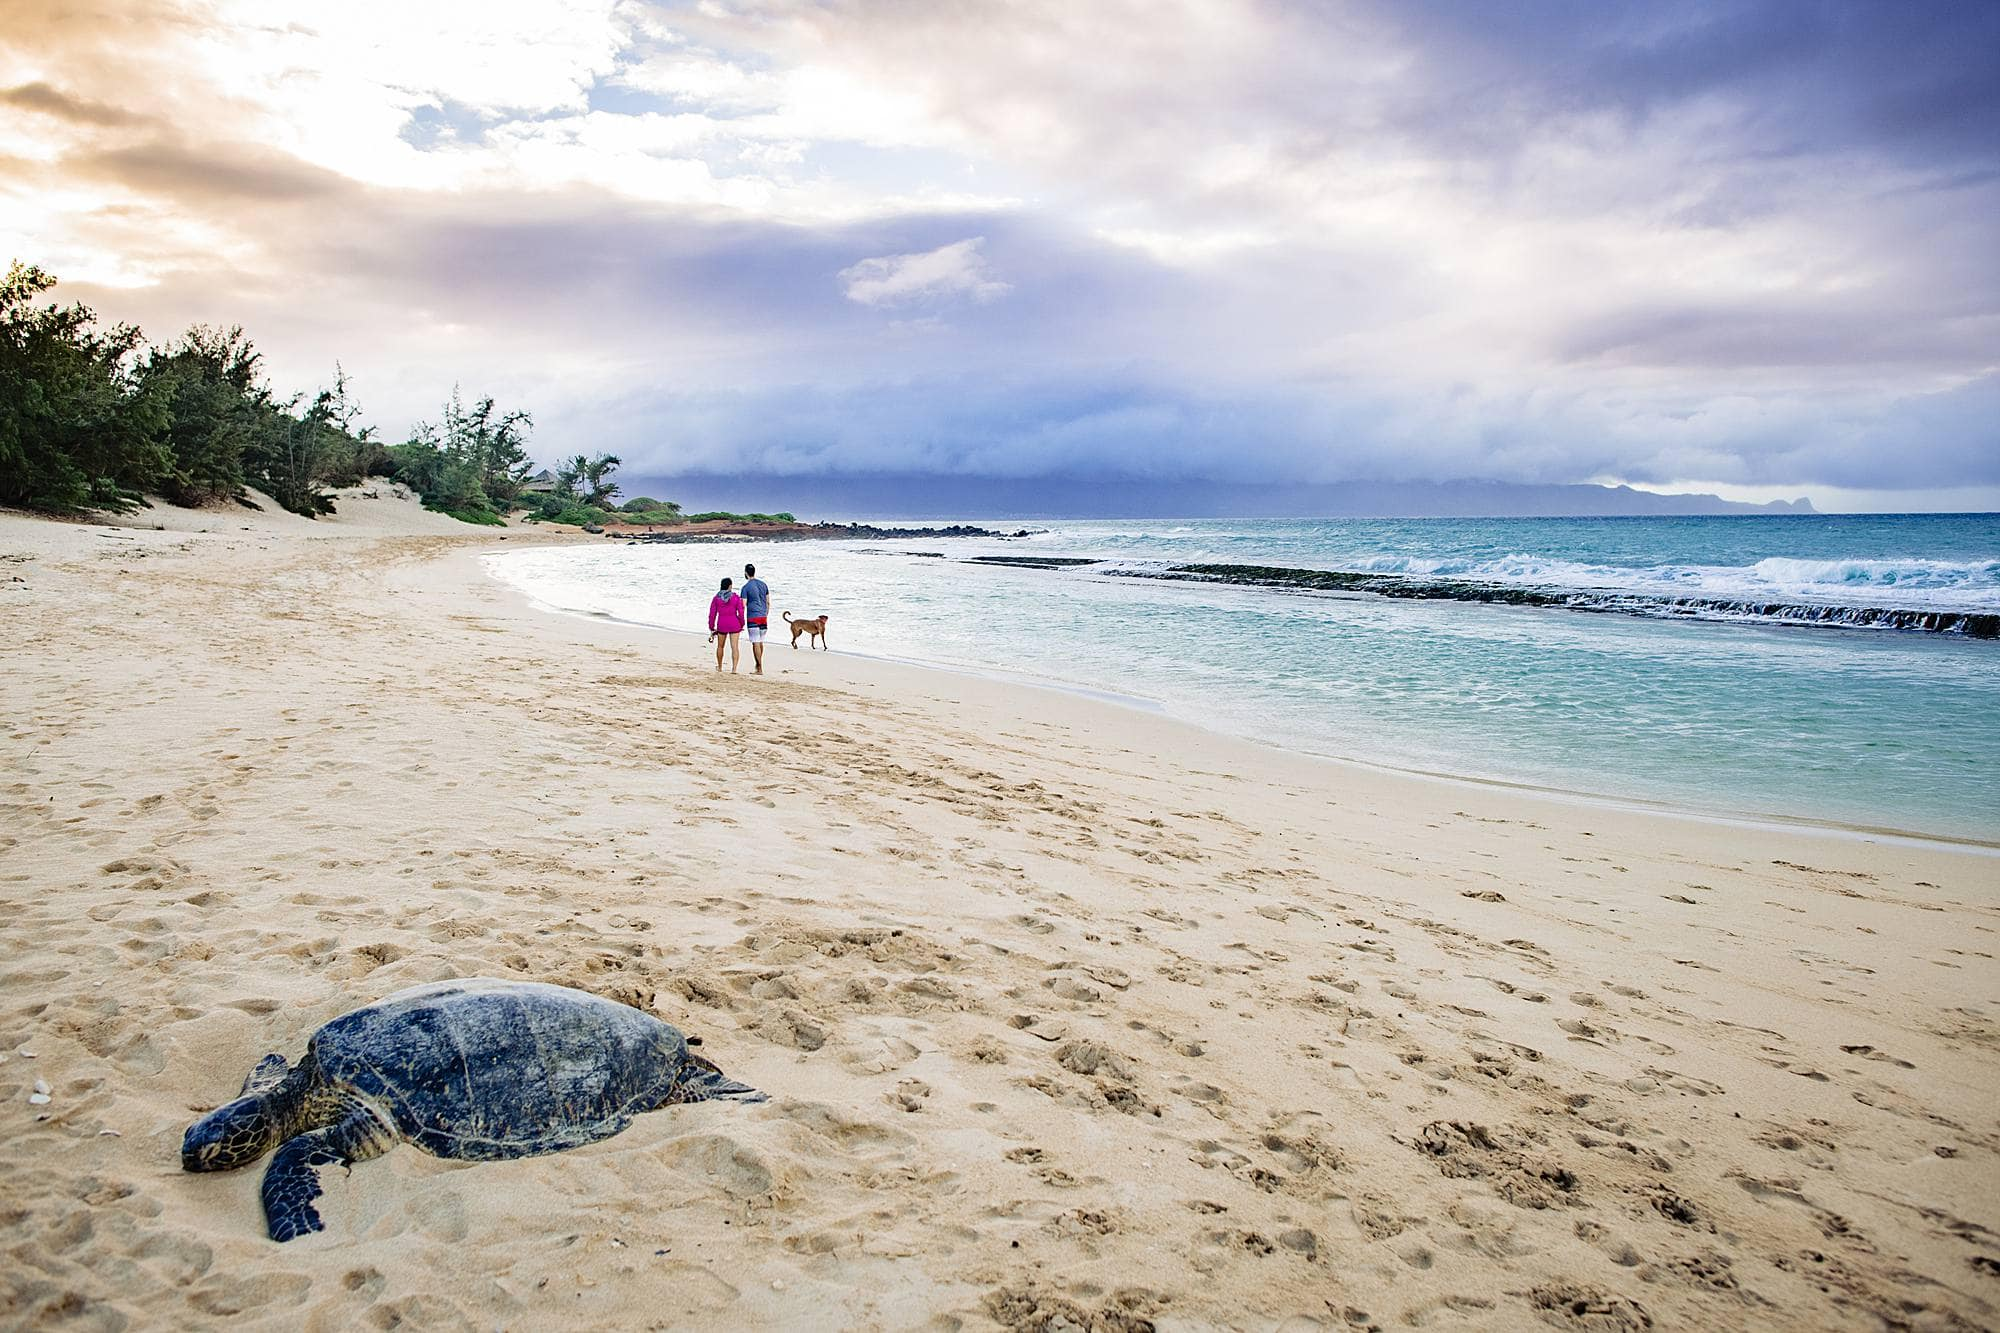 walking on a beach in maui with a turtle